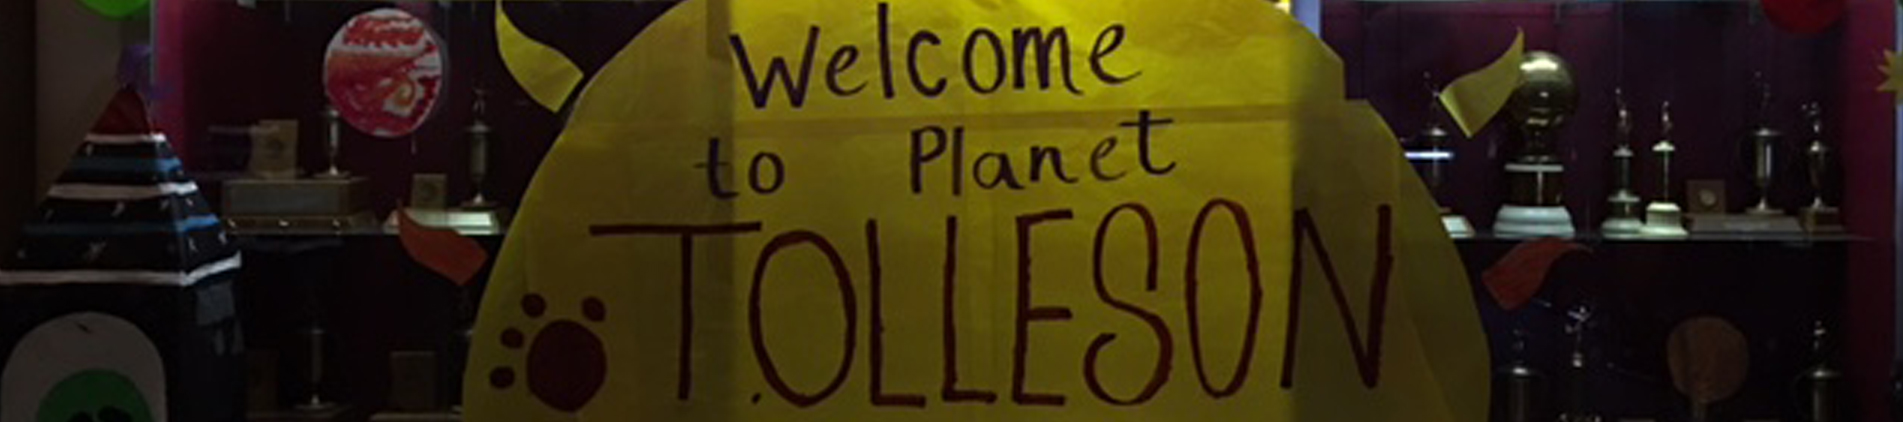 Welcome to Planet Tolleson